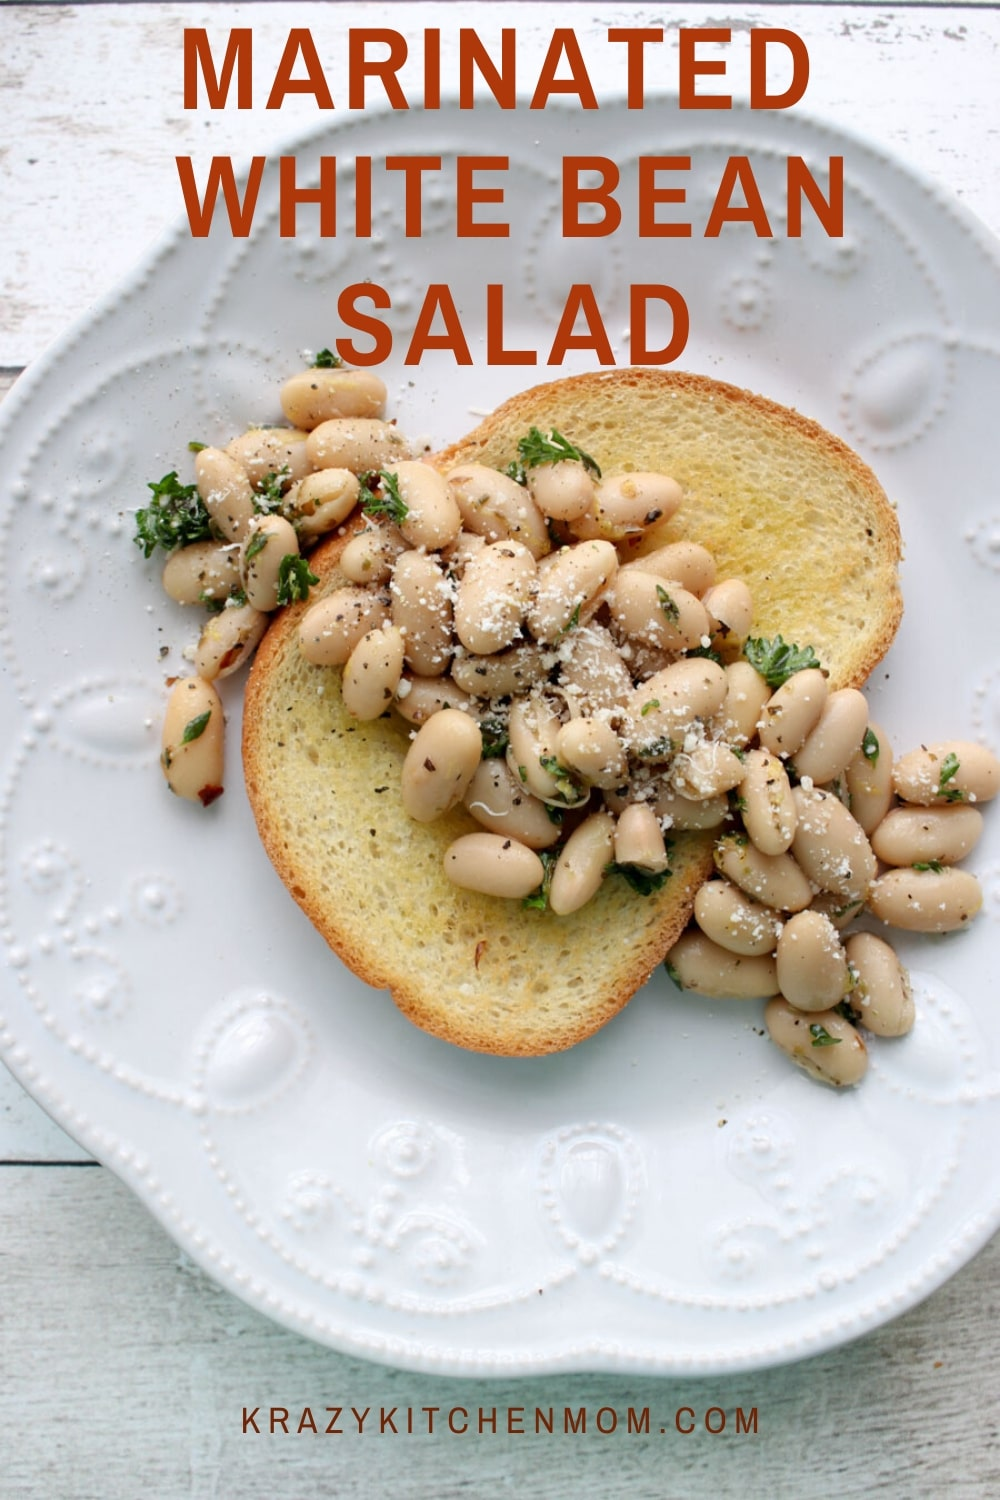 This Marinated White Bean Salad is simple and satisfying and comes together in just minutes. It's a combination of creamy white beans with fresh herbs and olive oil.  via @krazykitchenmom